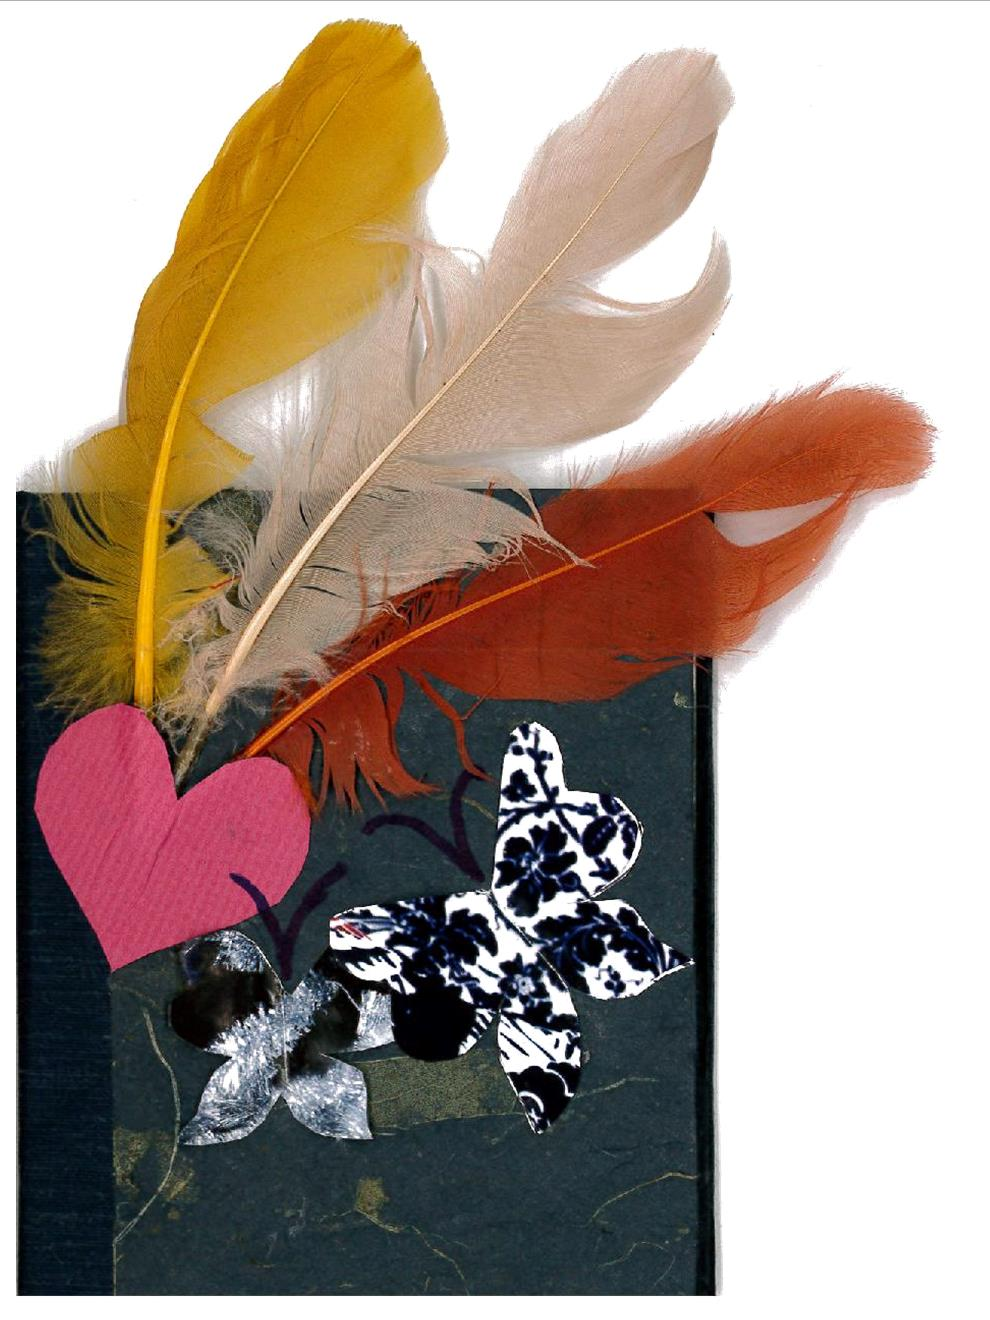 Book enhanced with feathers, a heart, and butterflies